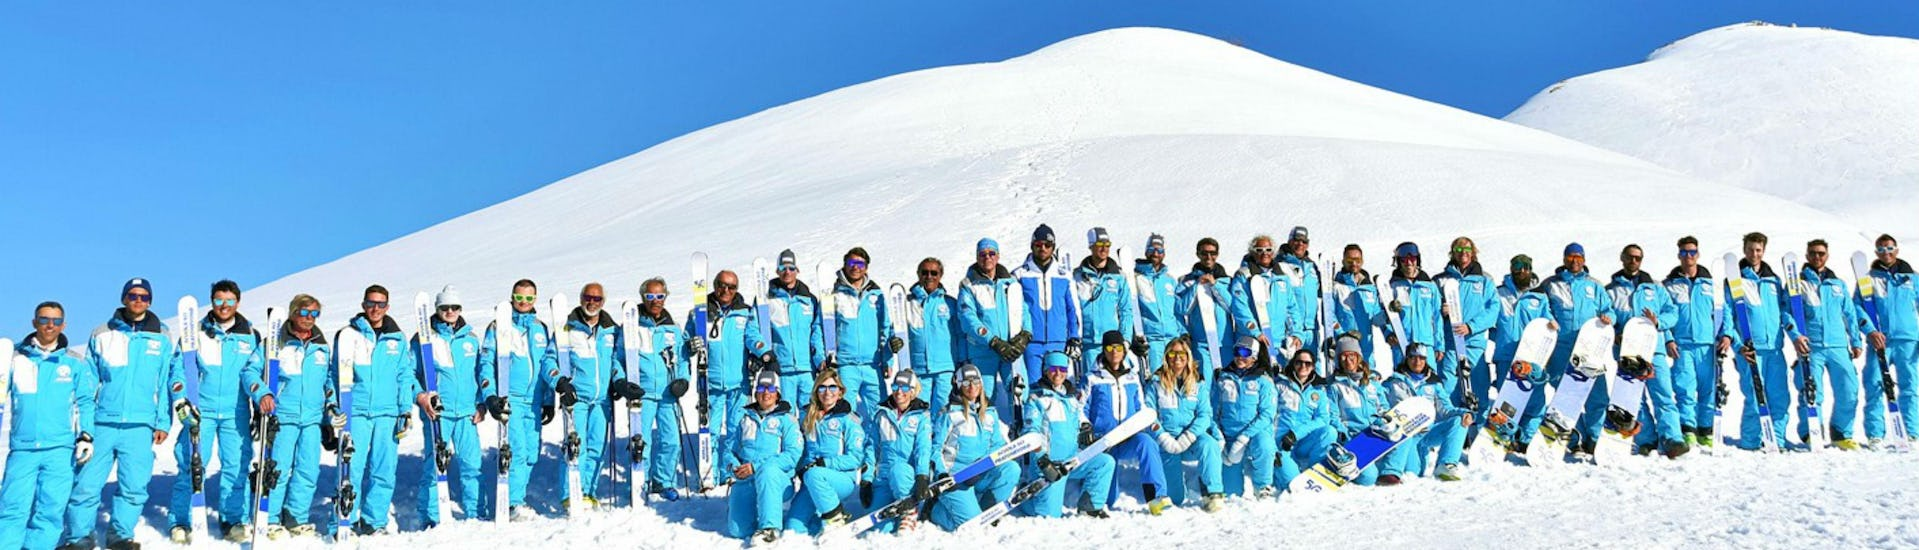 The ski instructors from the ski school Scuola di Sci e Snowboard Prato Nevoso are posing for a group photo.